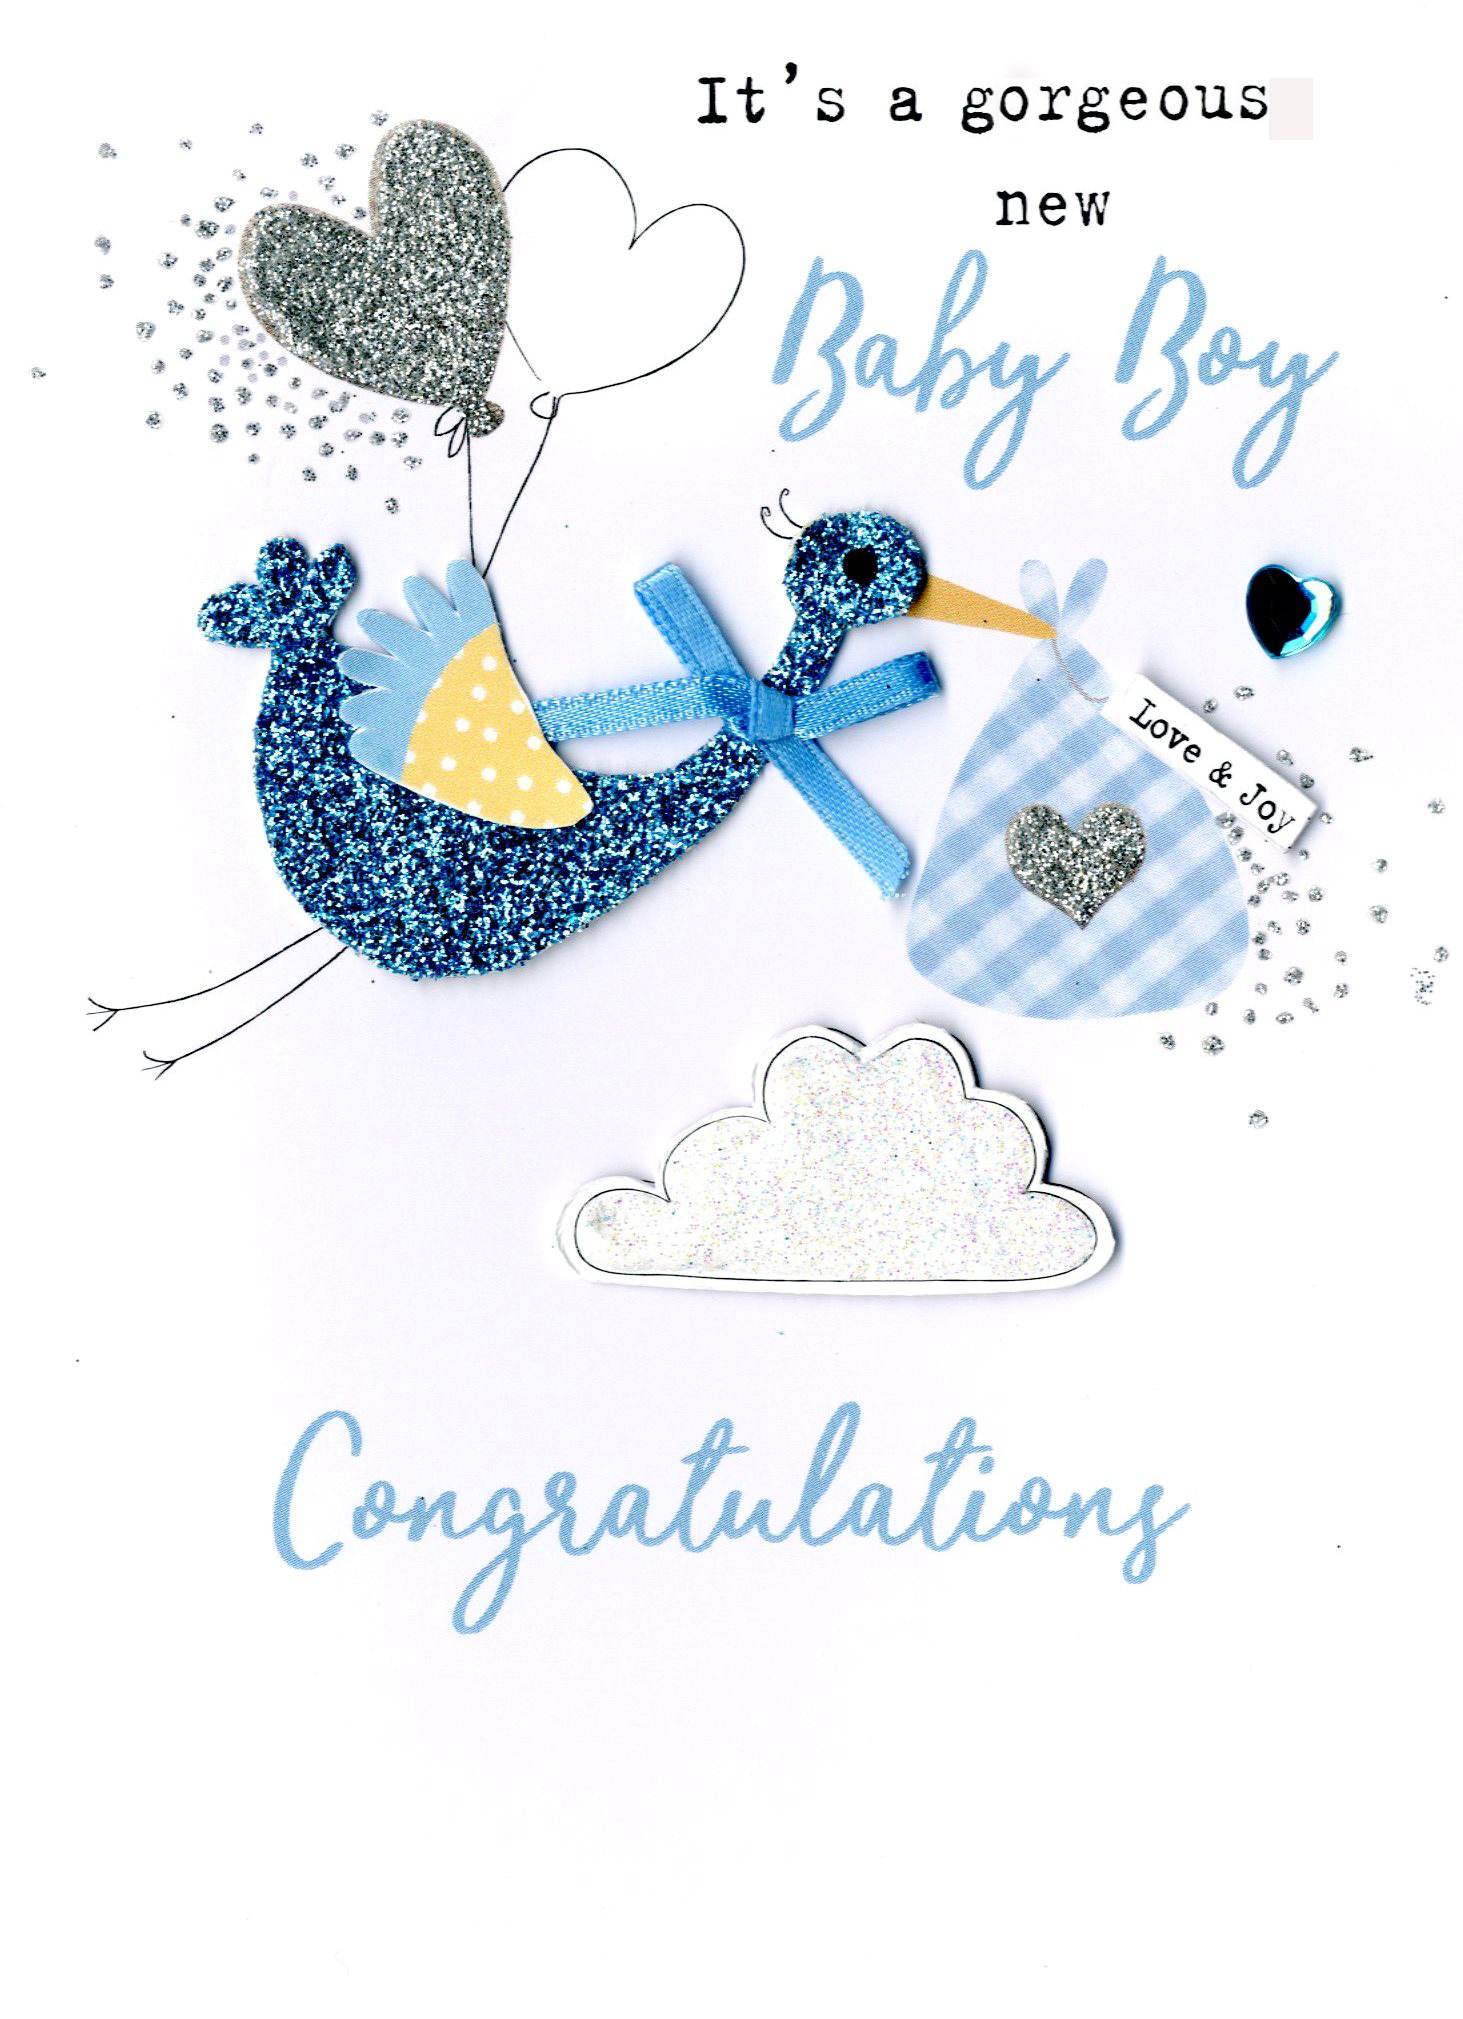 New Baby Boy Irresistible Greeting Card Cards